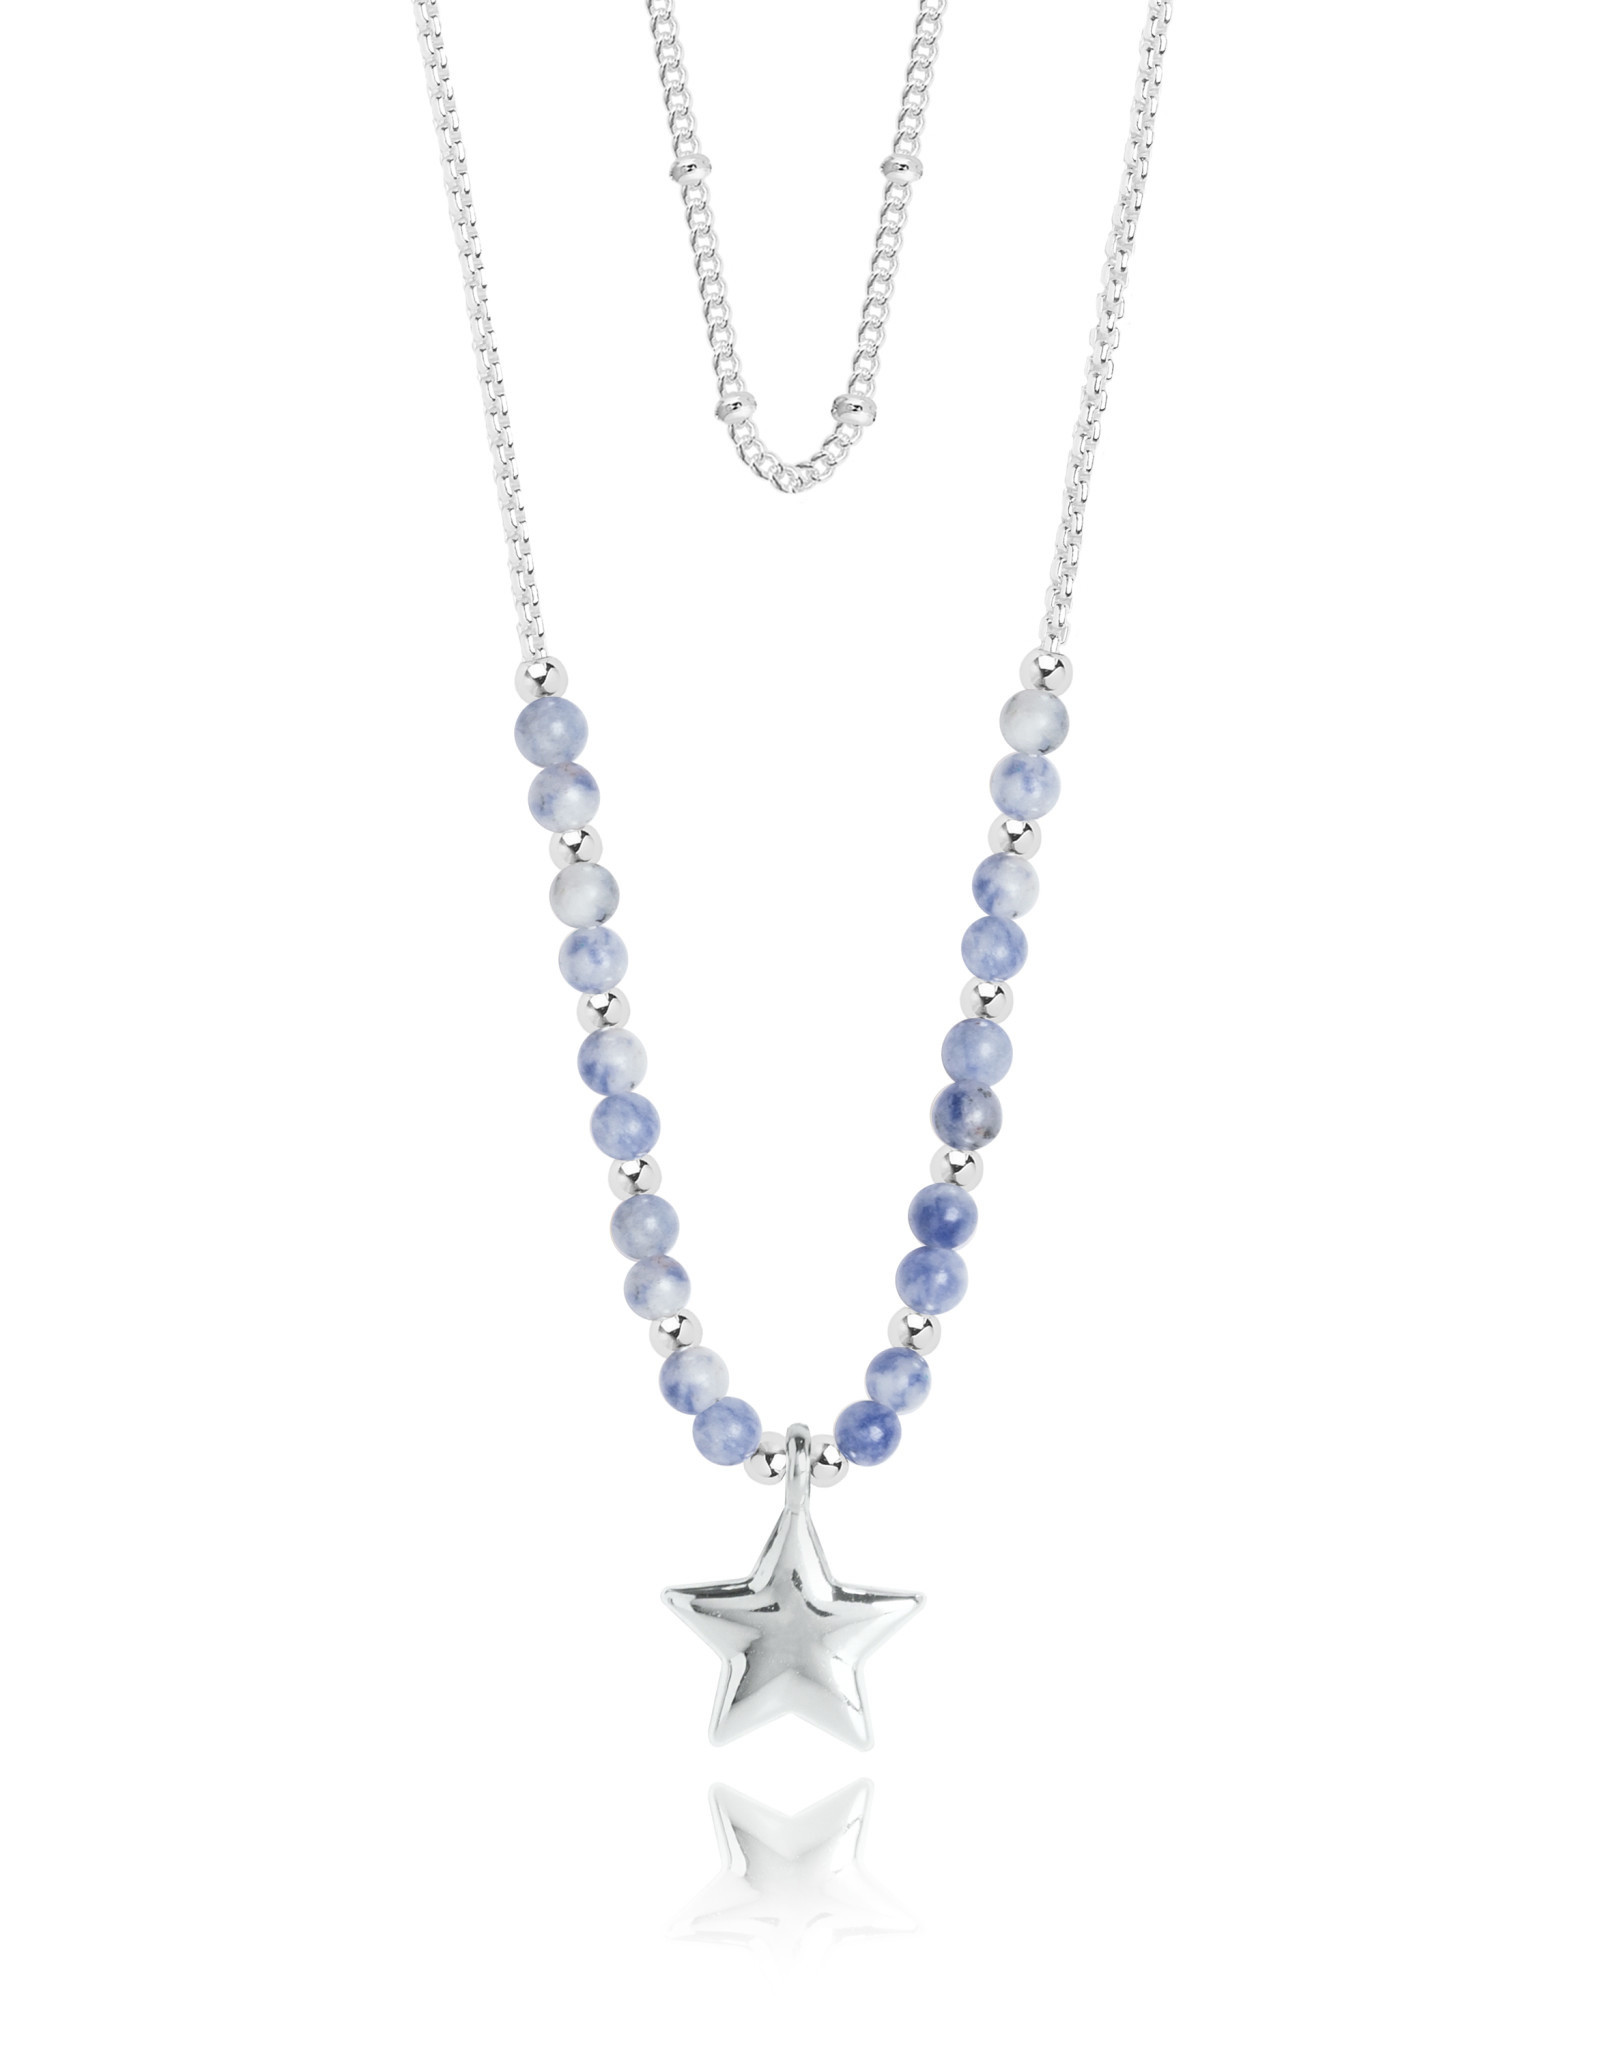 Katie Loxton KLSS - Friendship Necklace - Silver with Blue Lace Agate Stones Adjustable